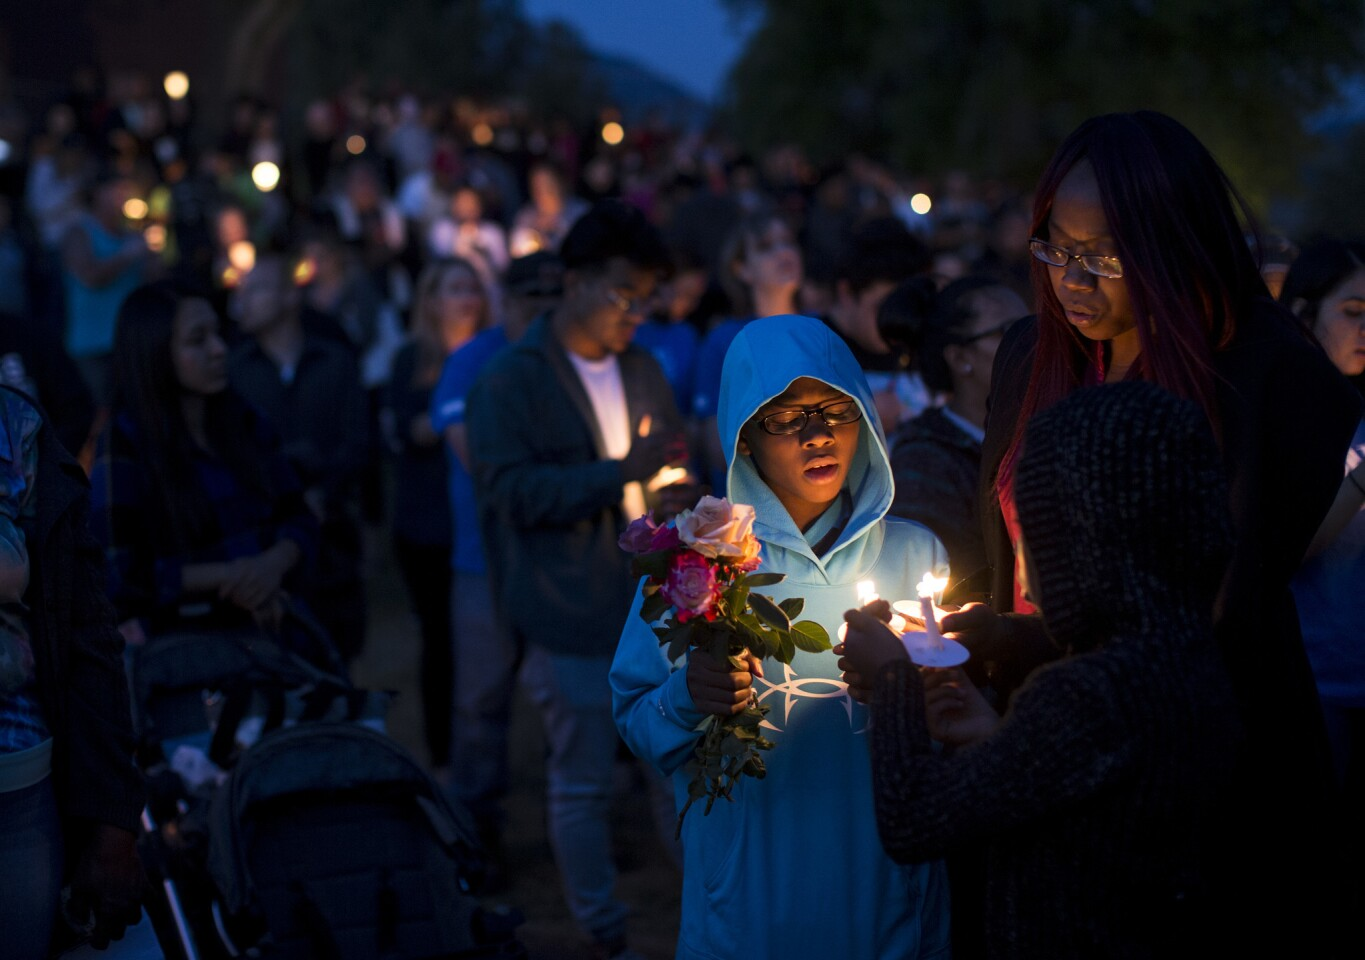 North Park student Elijah Beaven attends a candlelight prayer vigil with his mother, Laura Beaven.